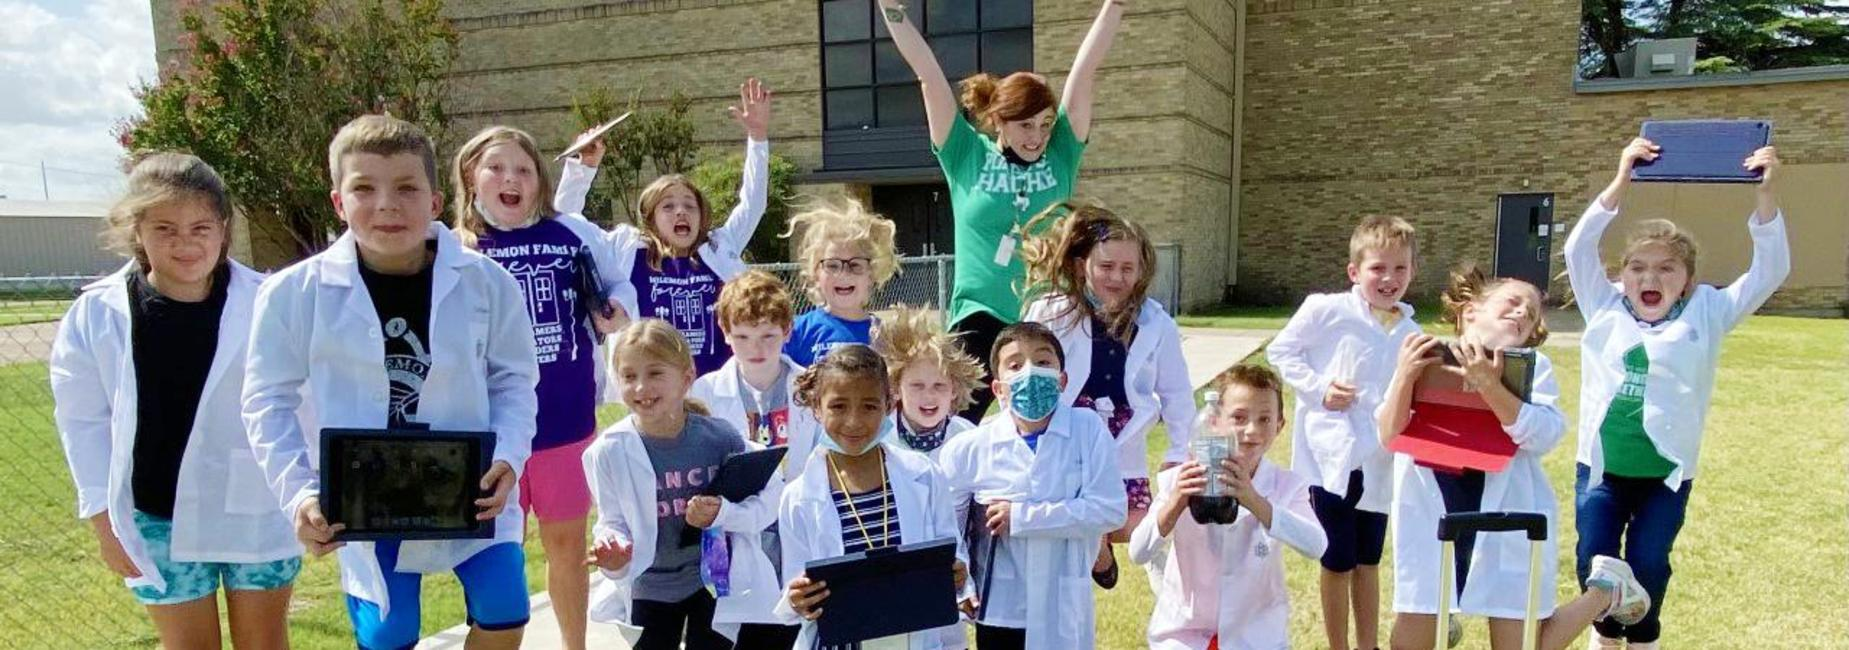 young students wearing lab coats jumping with their teacher